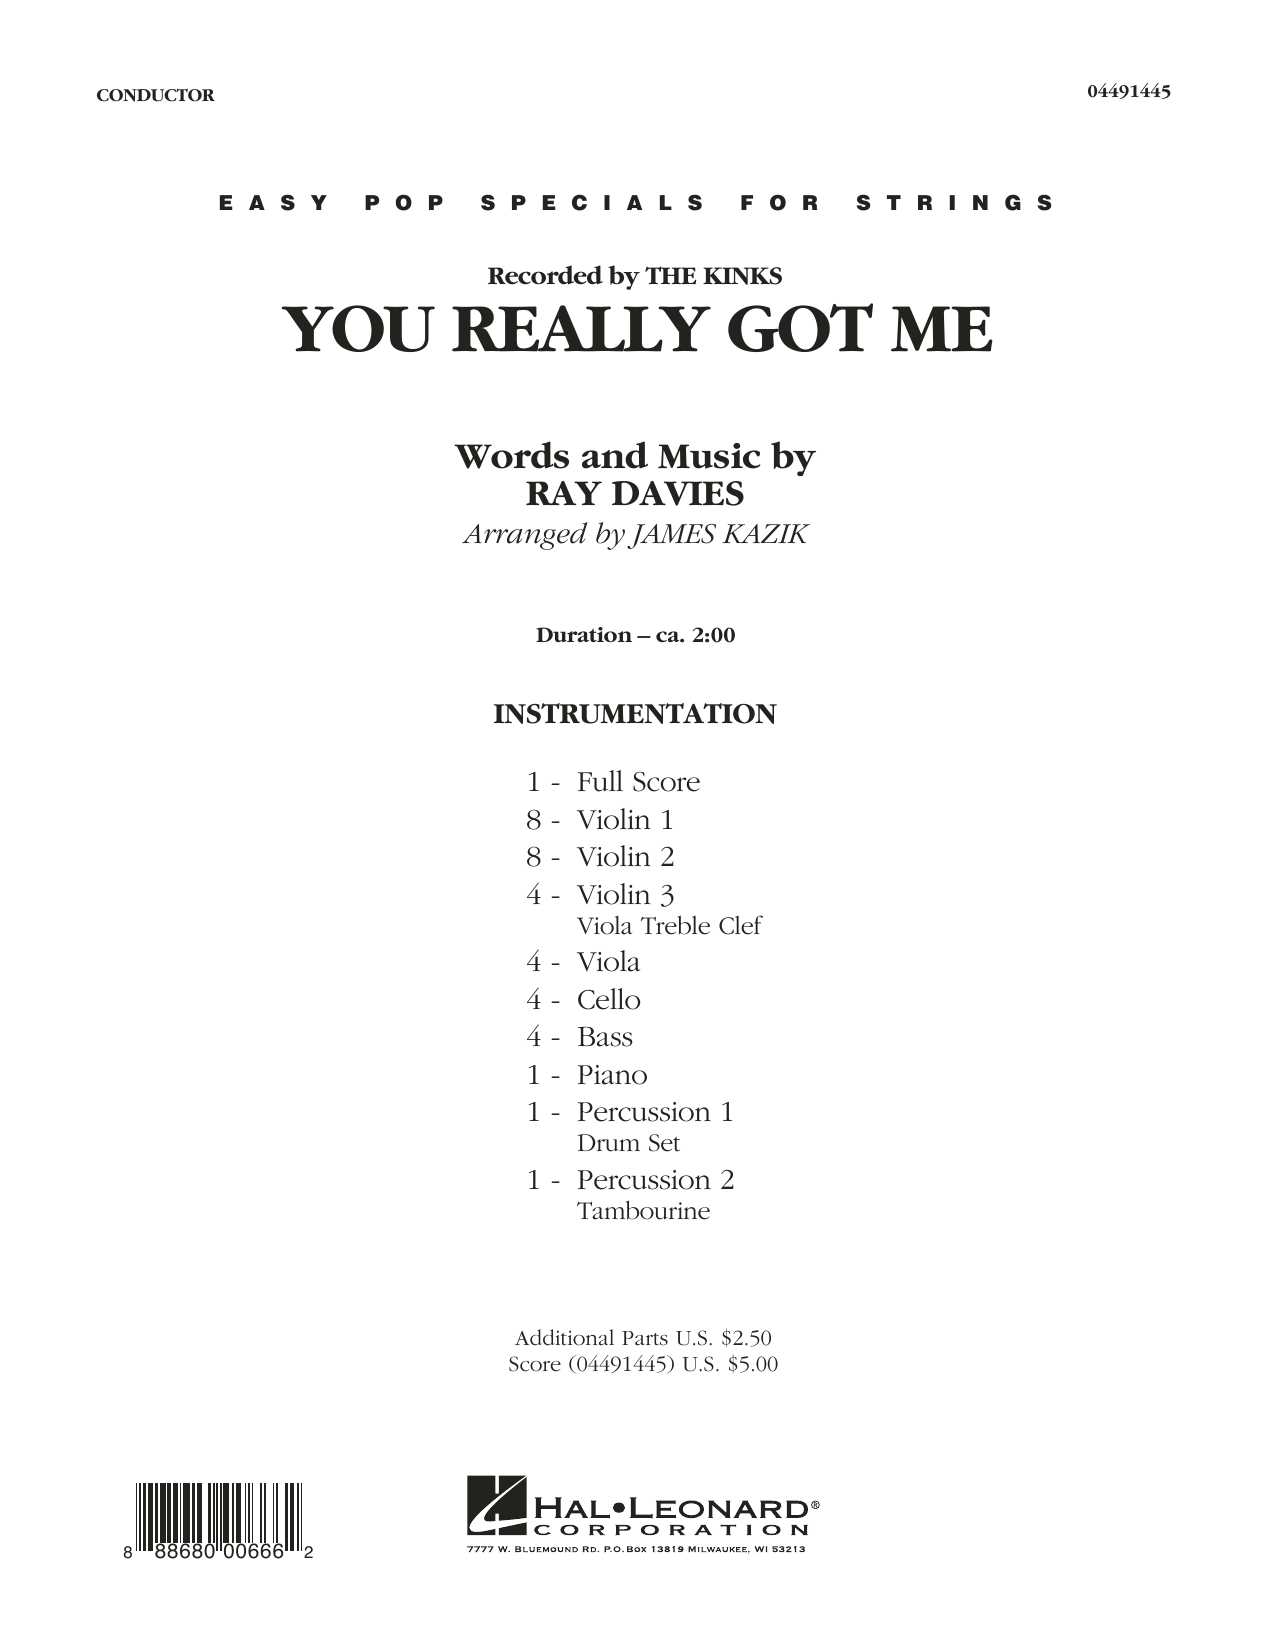 You Really Got Me (COMPLETE) sheet music for orchestra by James Kazik, Edward Van Halen, Ray Davies and The Kinks. Score Image Preview.